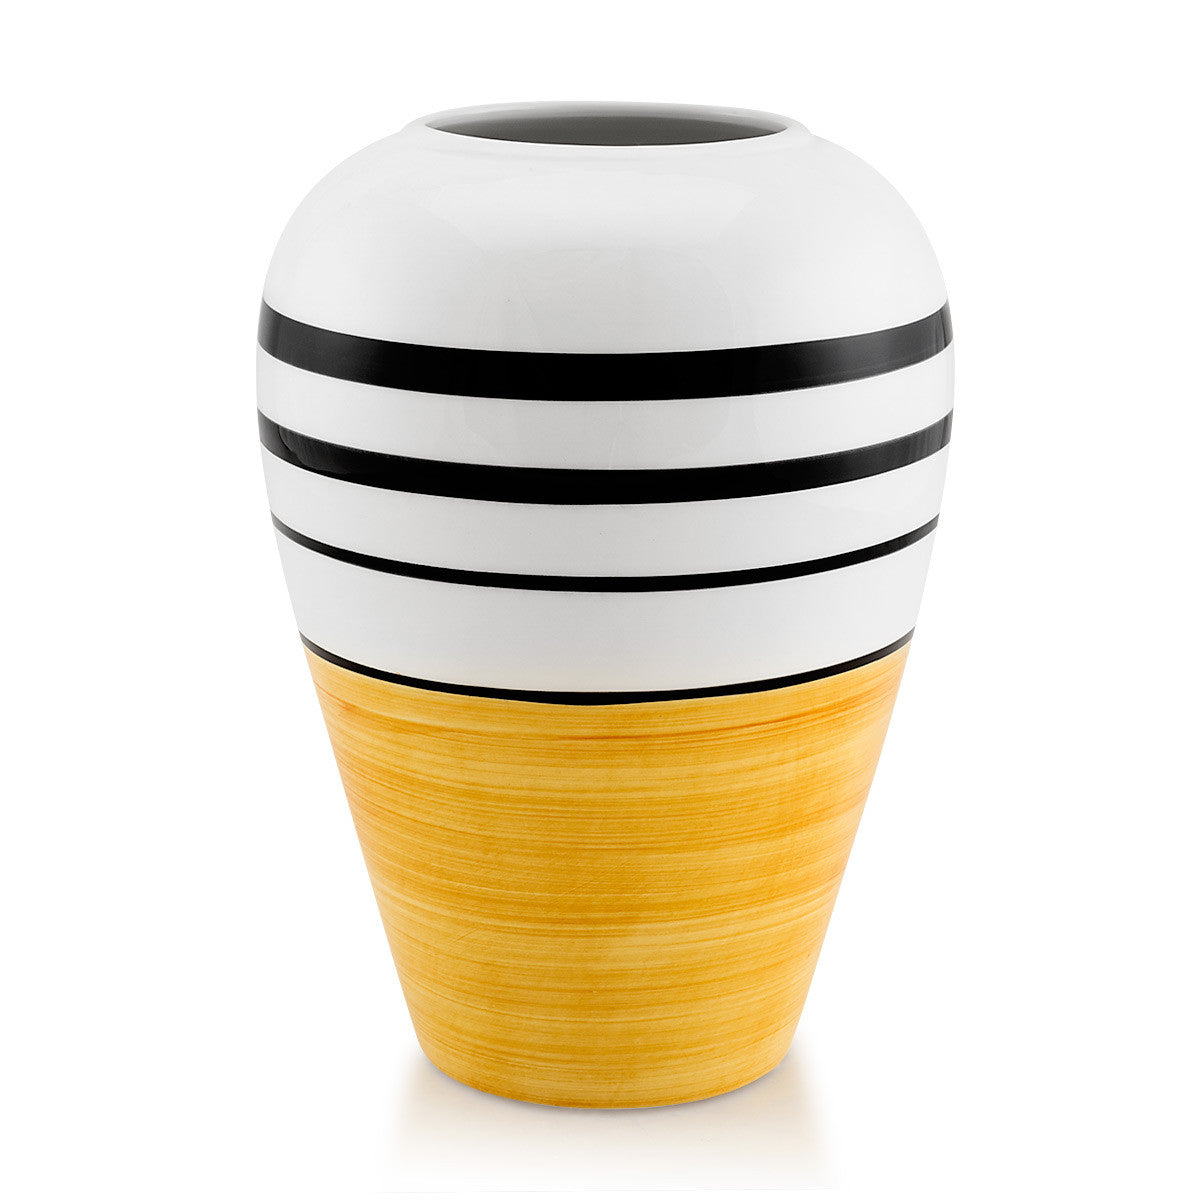 Ceramic round vase yellow color | Spinning top